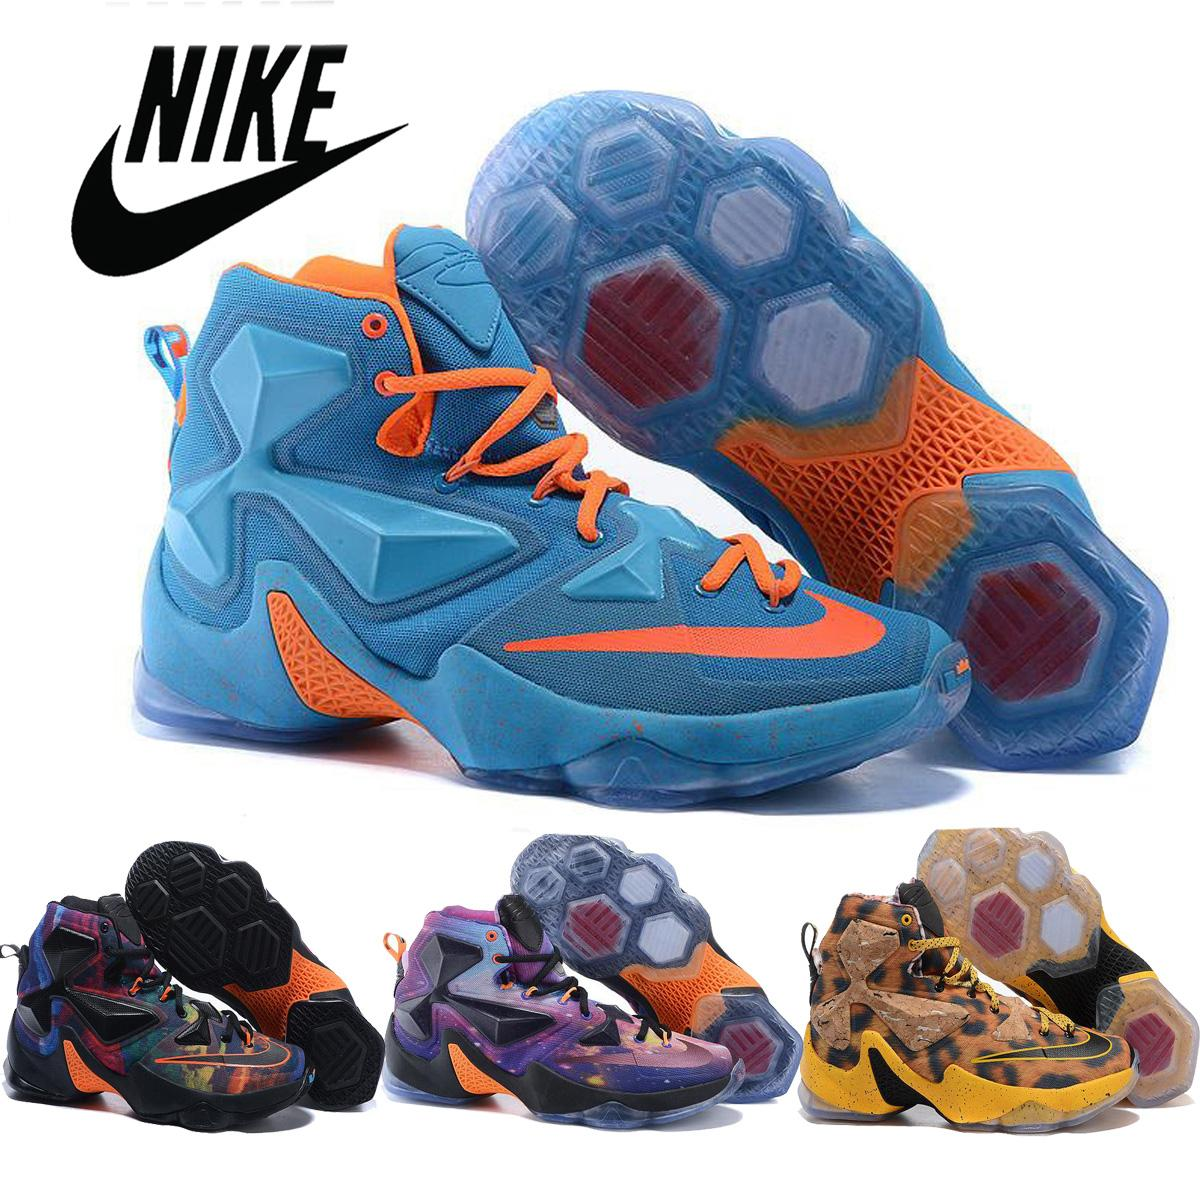 aba1cb165e9b 2016 Nike Lebron 13 XIII Akronite Philosophy Multi Color Men Basketball  Shoes